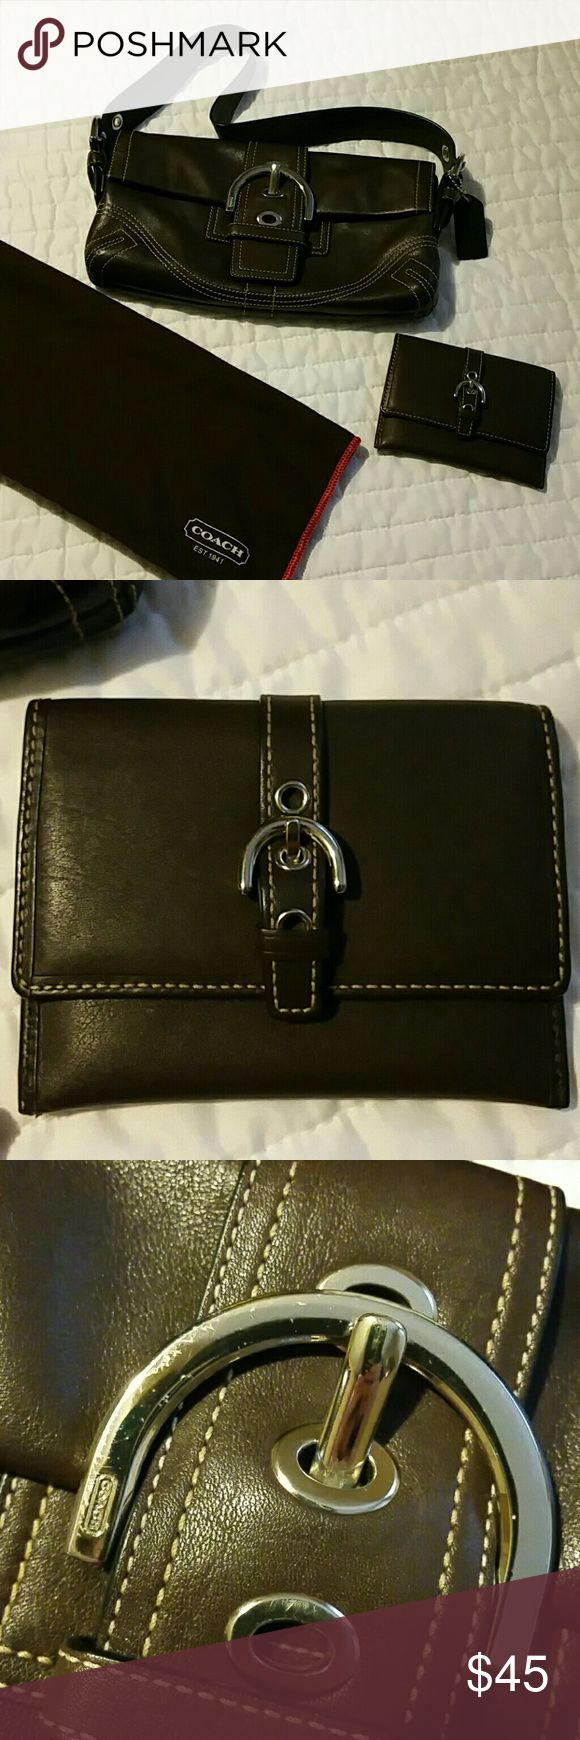 Coach purse Beautiful chocolate brown leather authentic coach purse. Great size for going out and about.Measures approx. 10 in long x 6in high. Magnetic button closure. Has small zipped pocket, one small open pocket and a small separate compartment in the back.  Comes with card holder. Leather is in excellent condition but there is a bit of wear on the front buckle. Also includes storage bag. Very pretty just too small for all the stuff I carry daily. Coach Bags